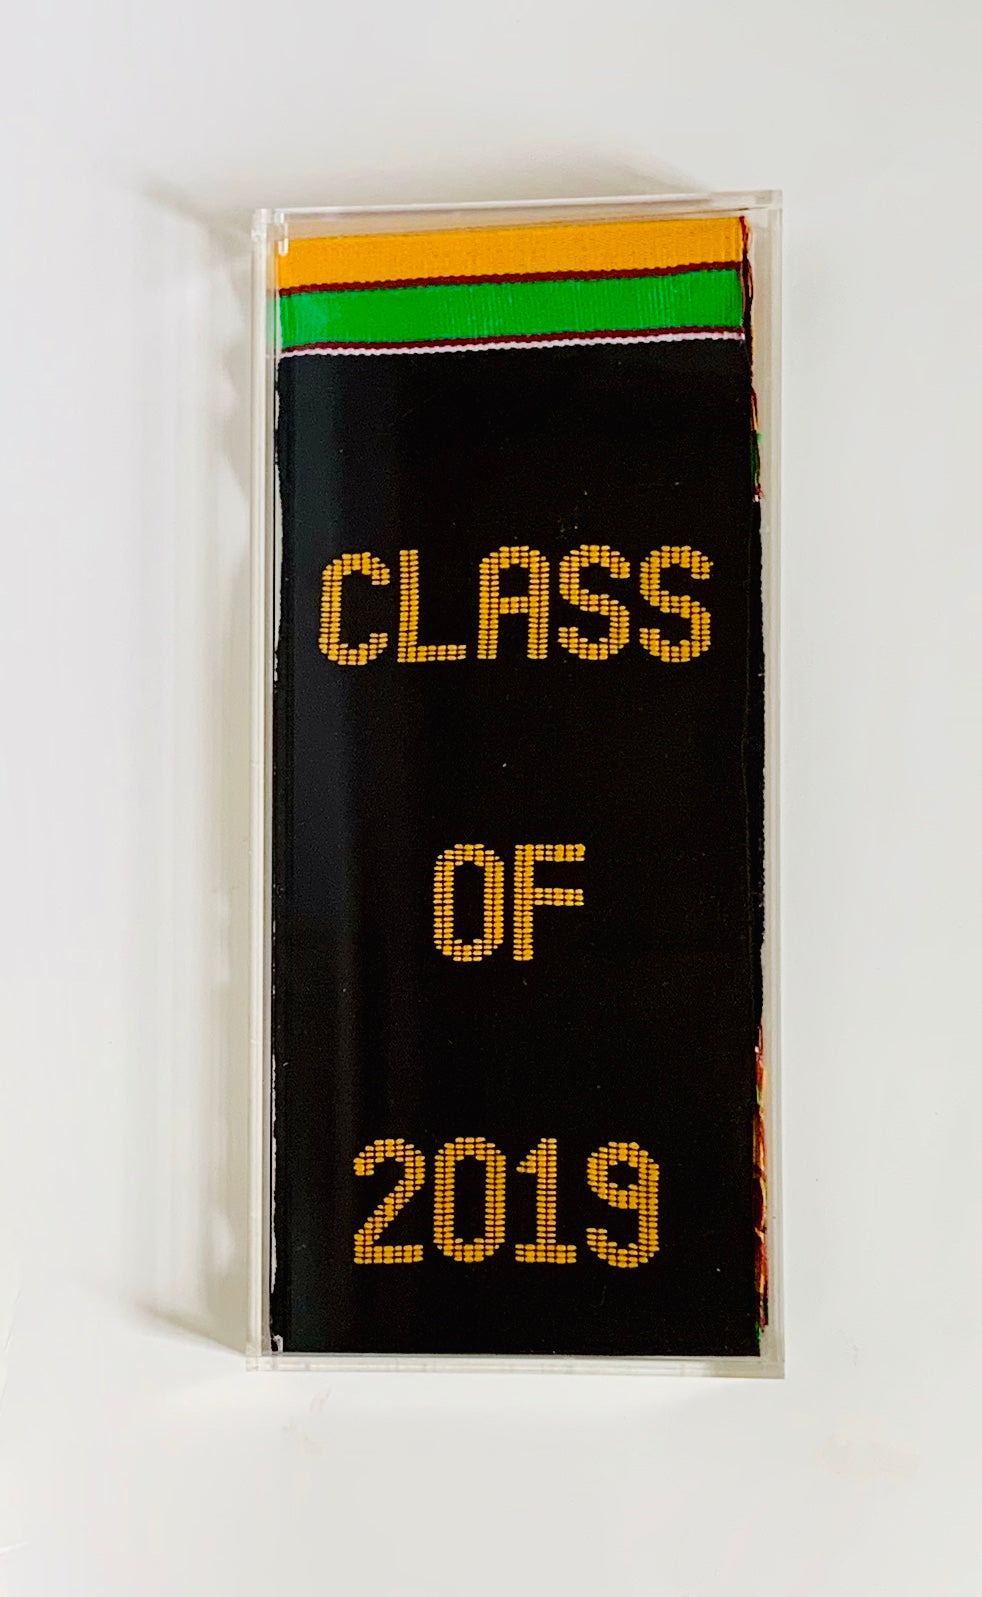 Graduation Stole Display Case - Kente Stoles